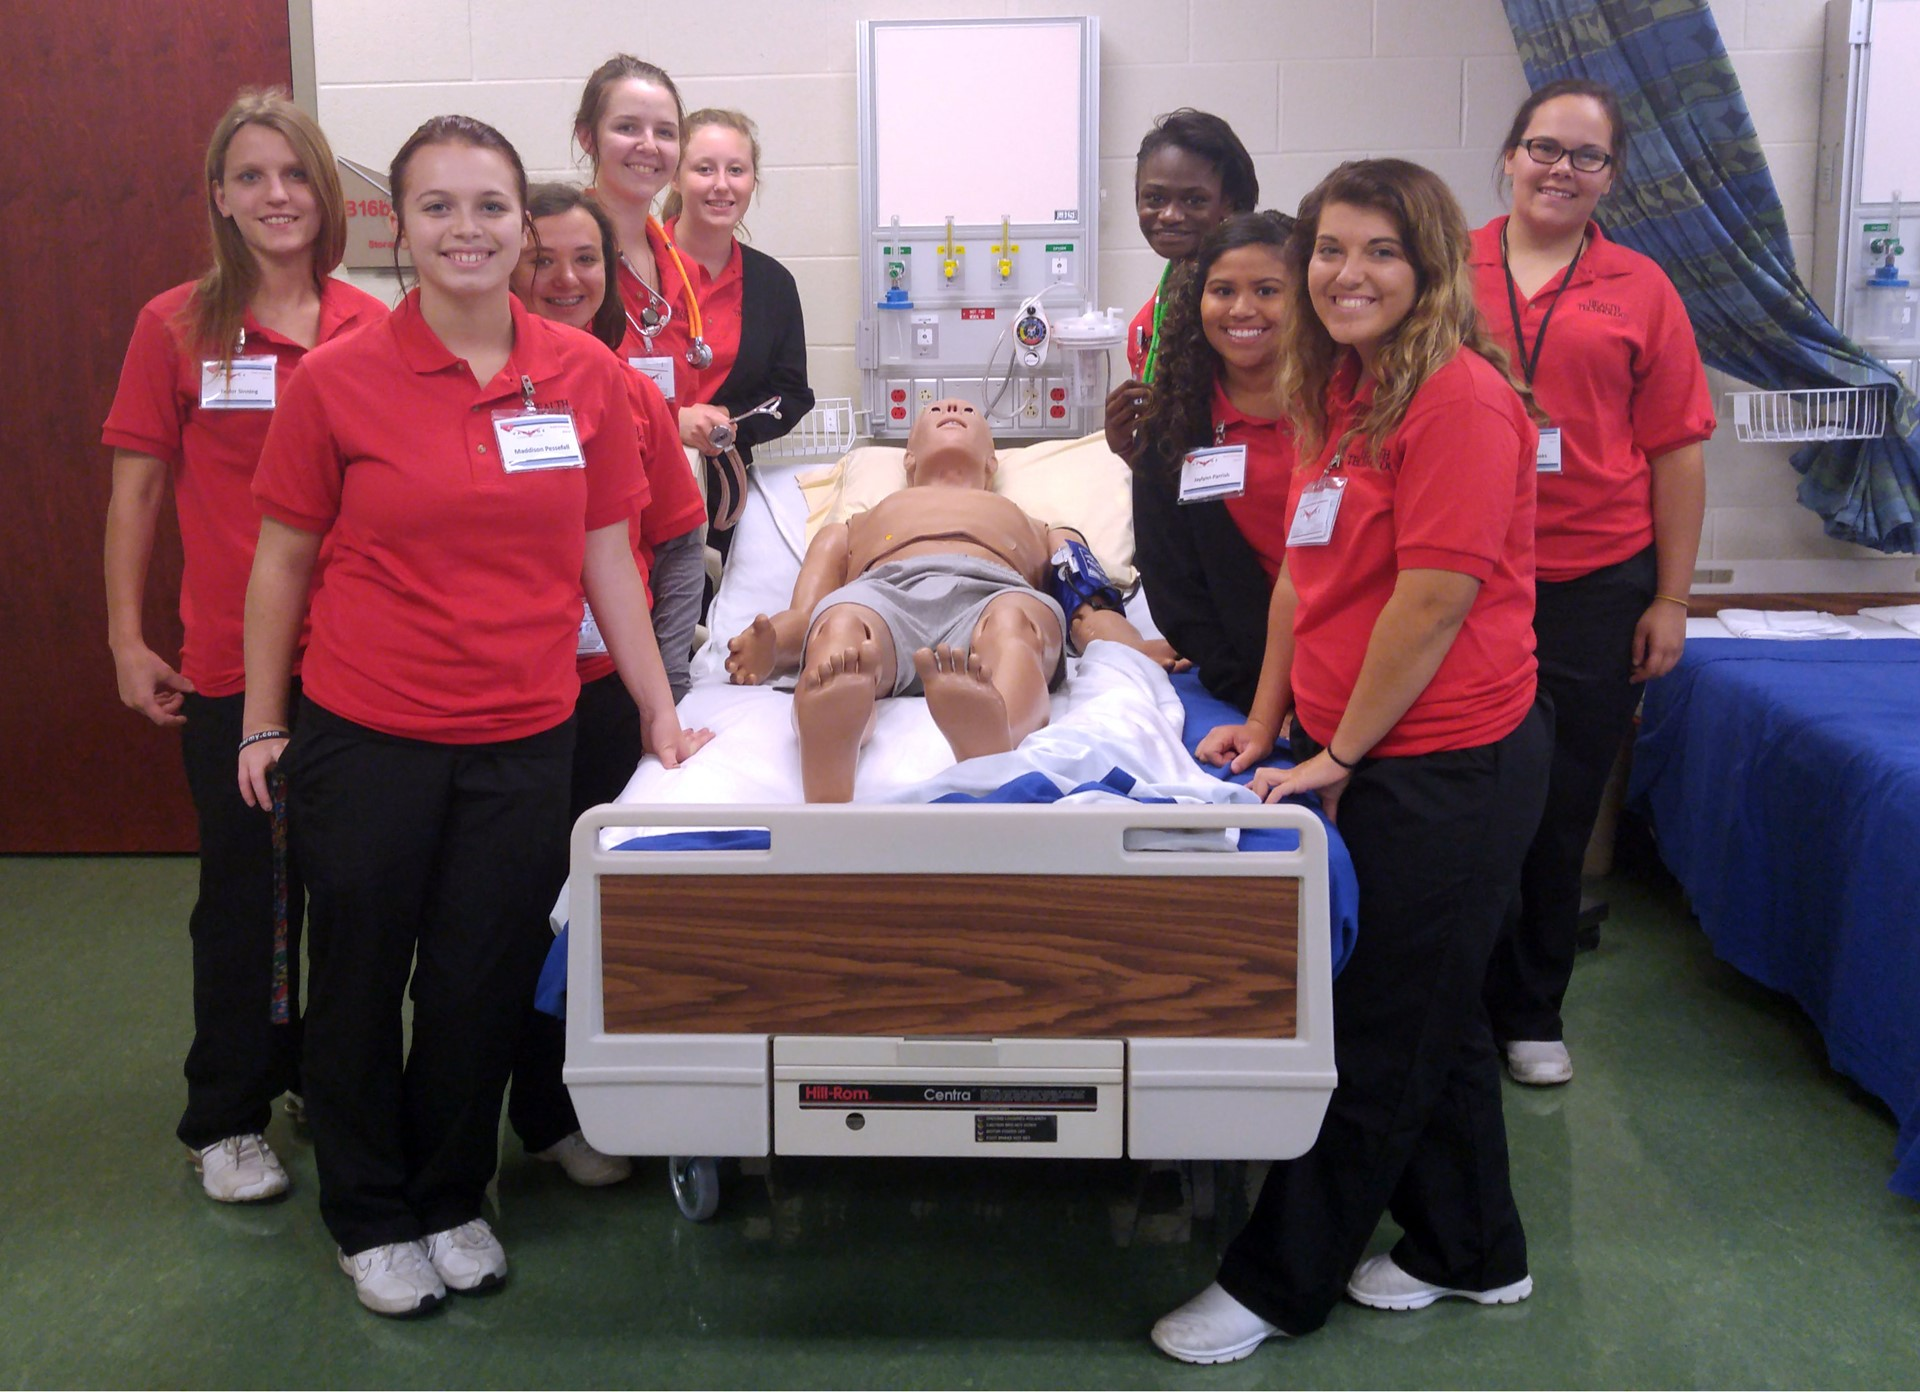 Female Health Technology students in red shirts surround hospital bed with human simulator HAL